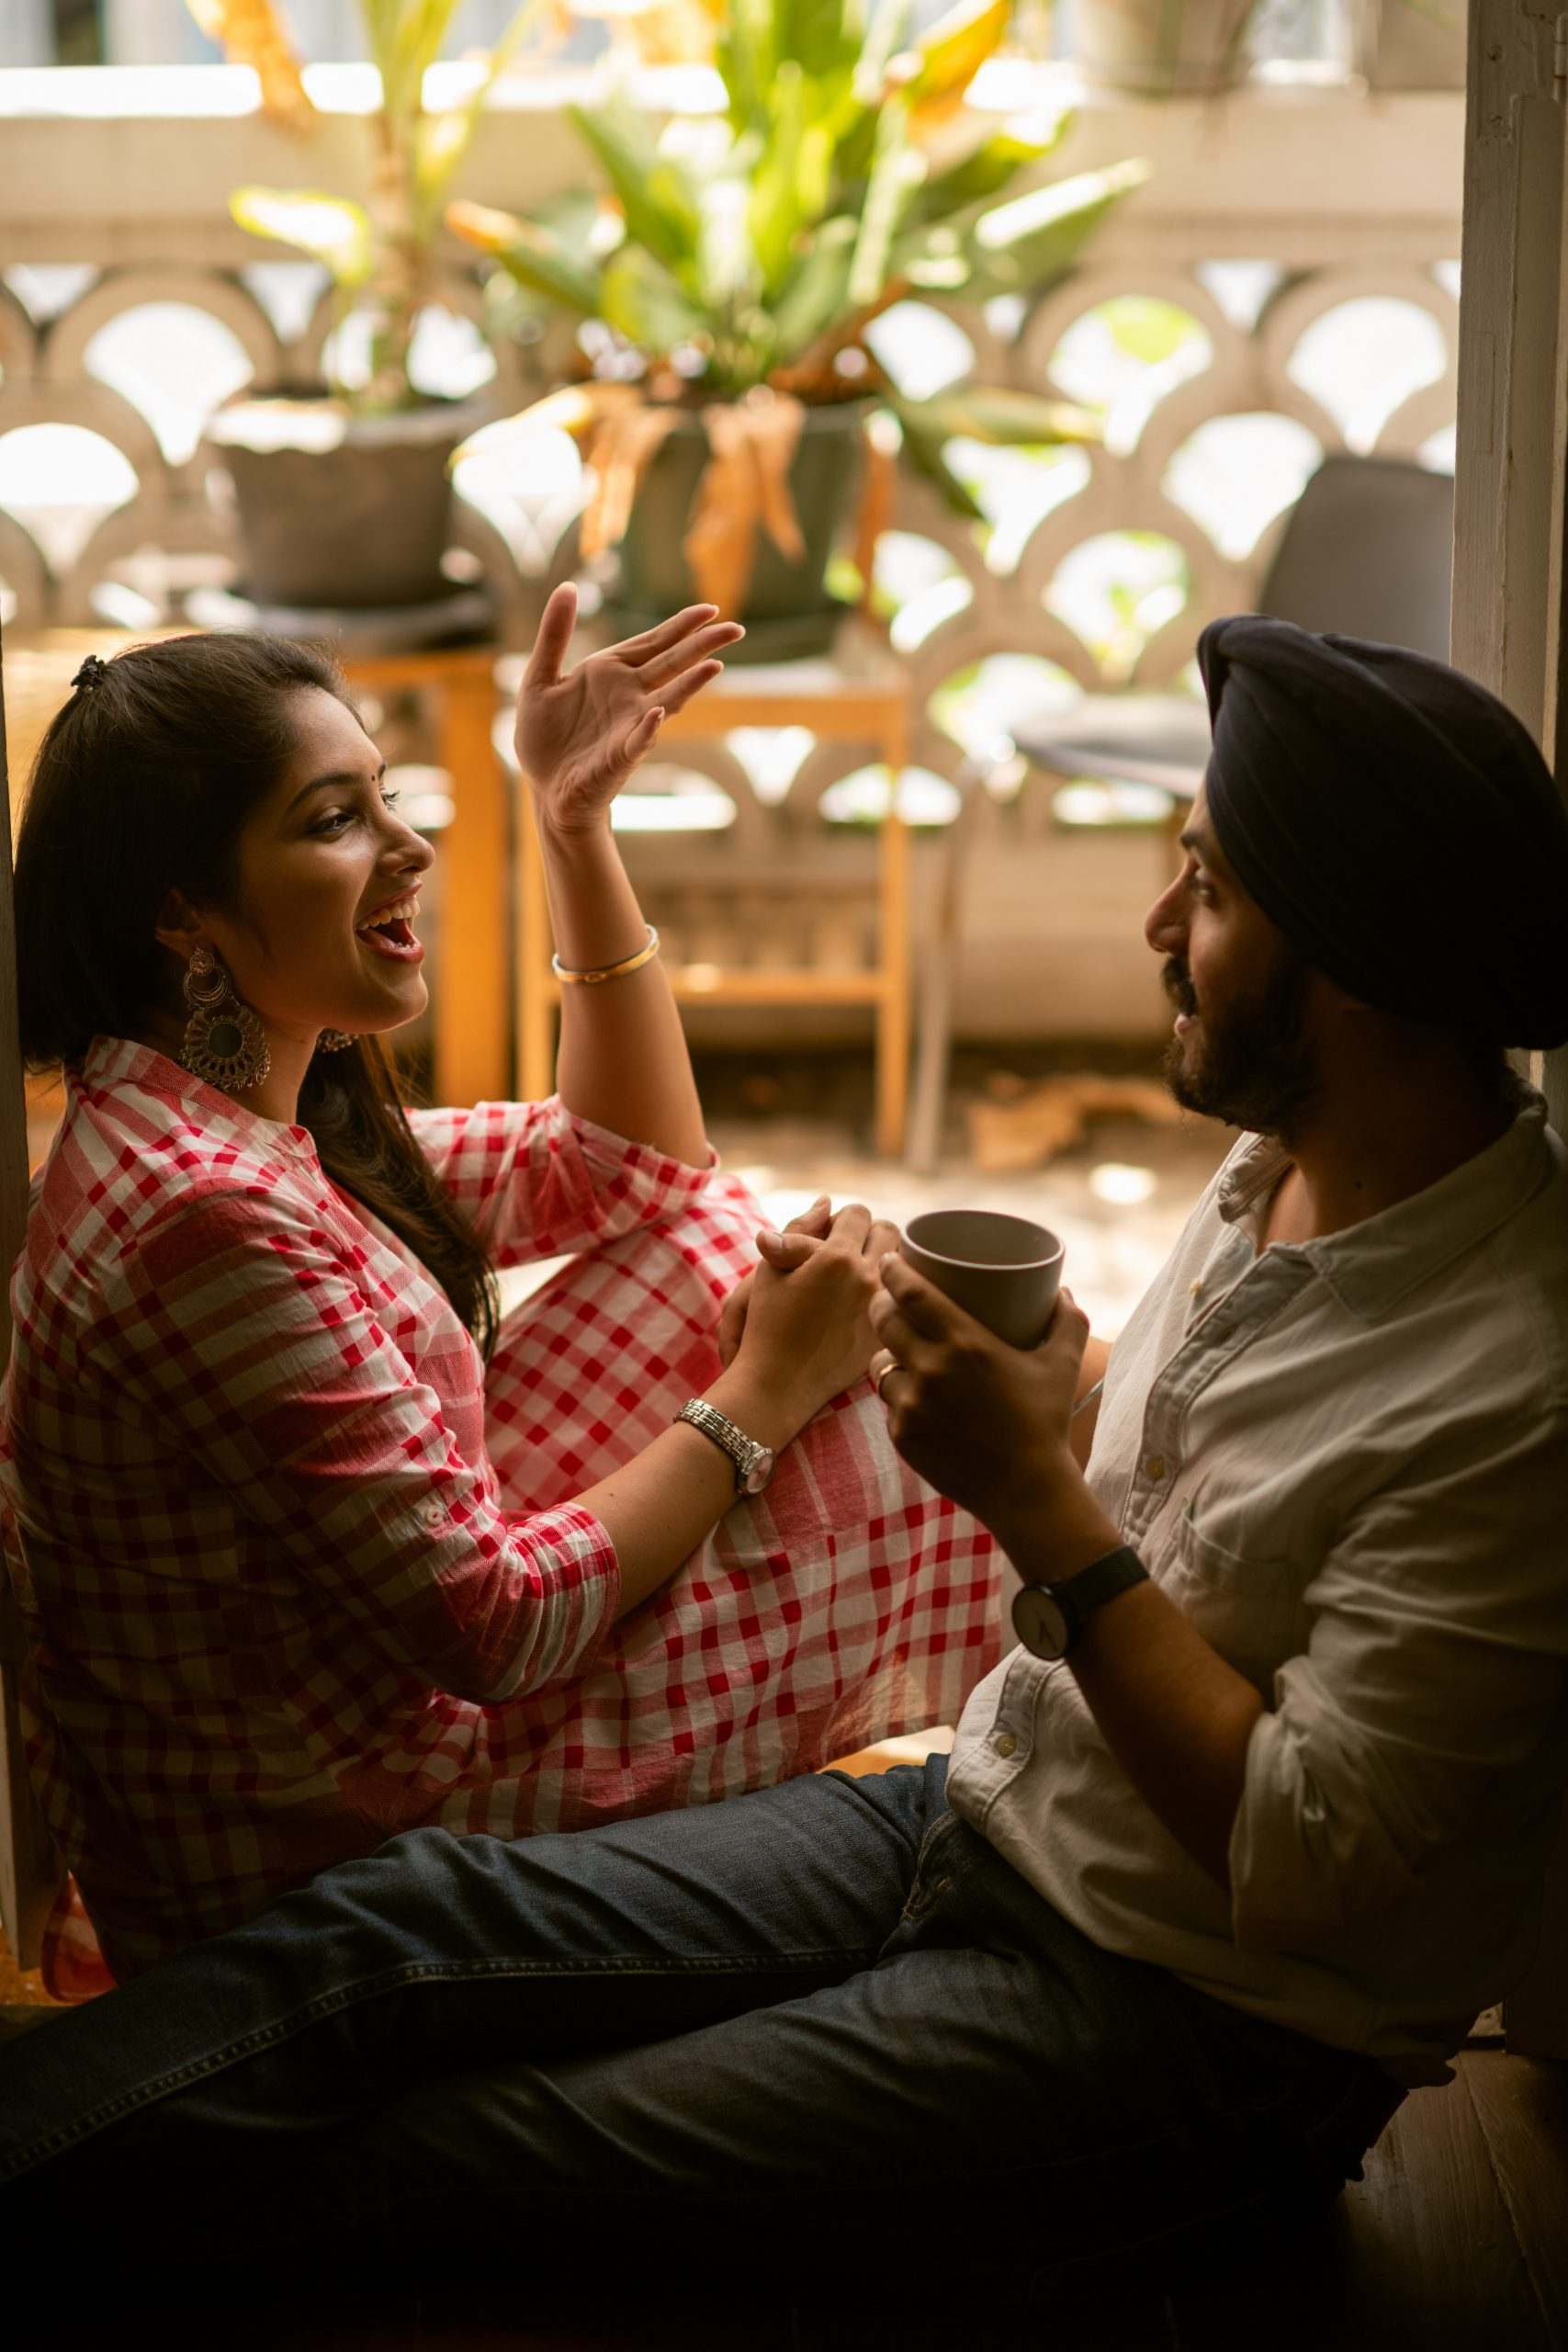 tips-for-improving-relationships-between-couples-2